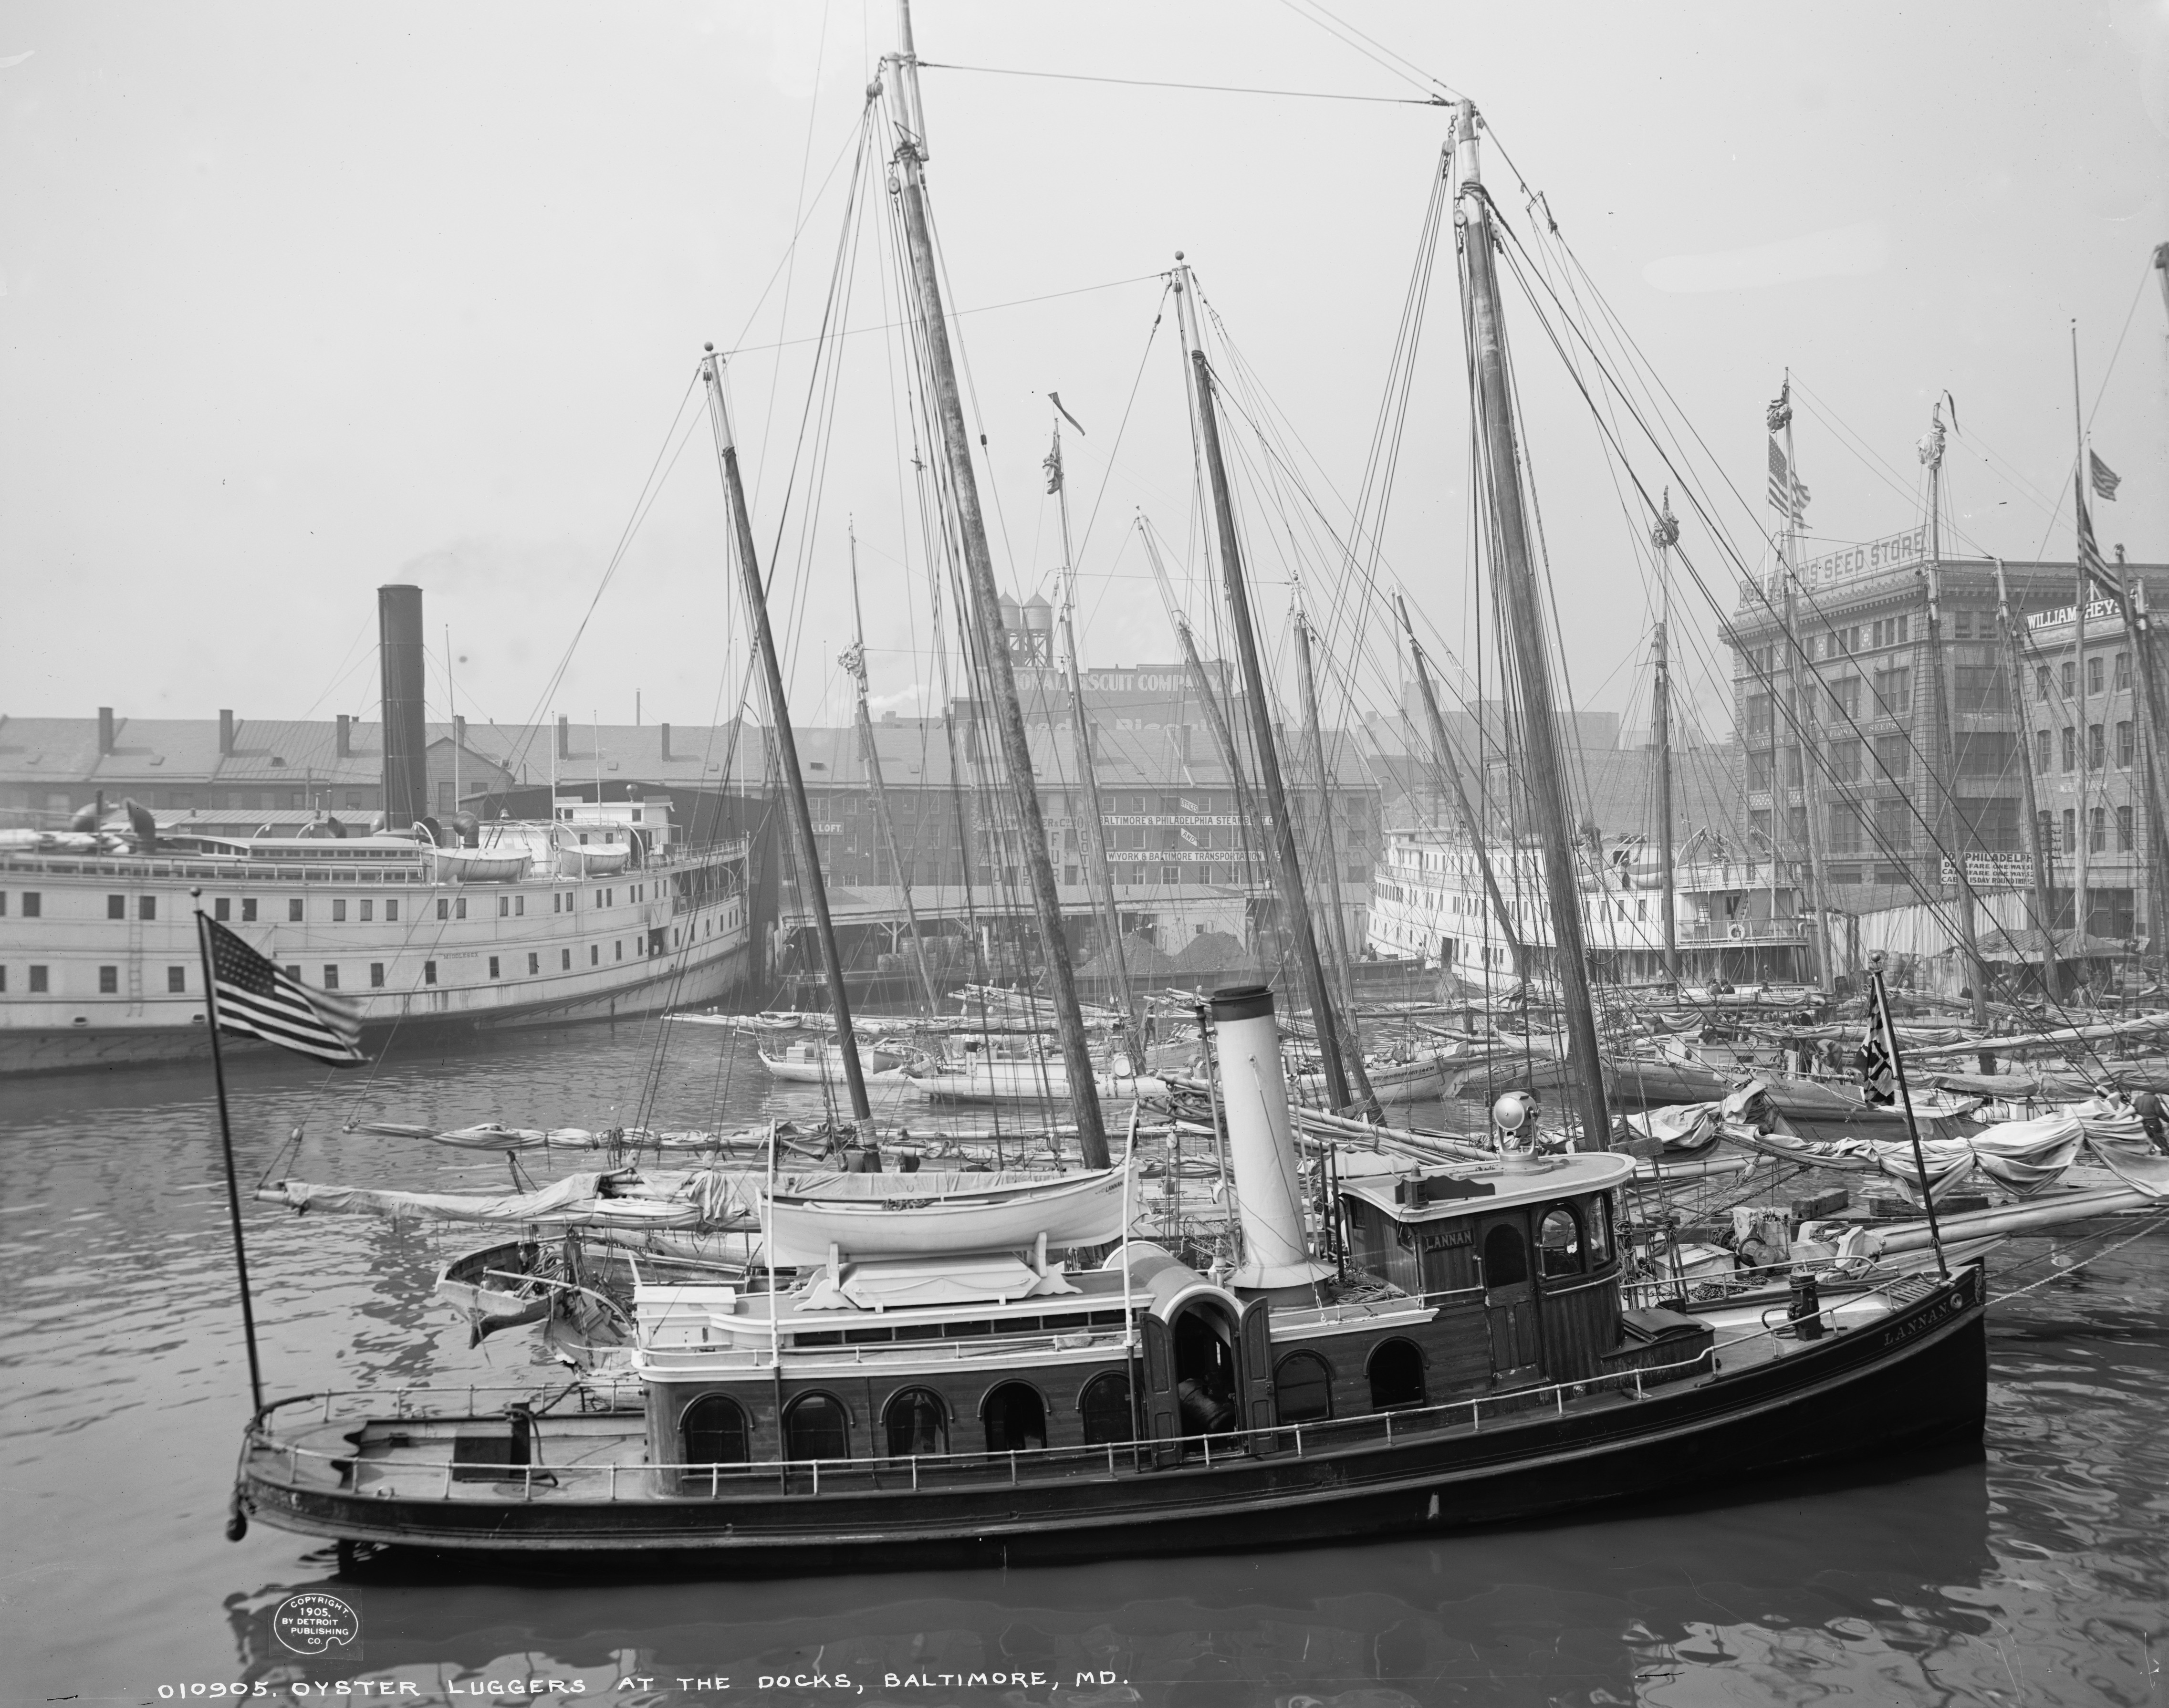 Oyster Luggers at the Docks